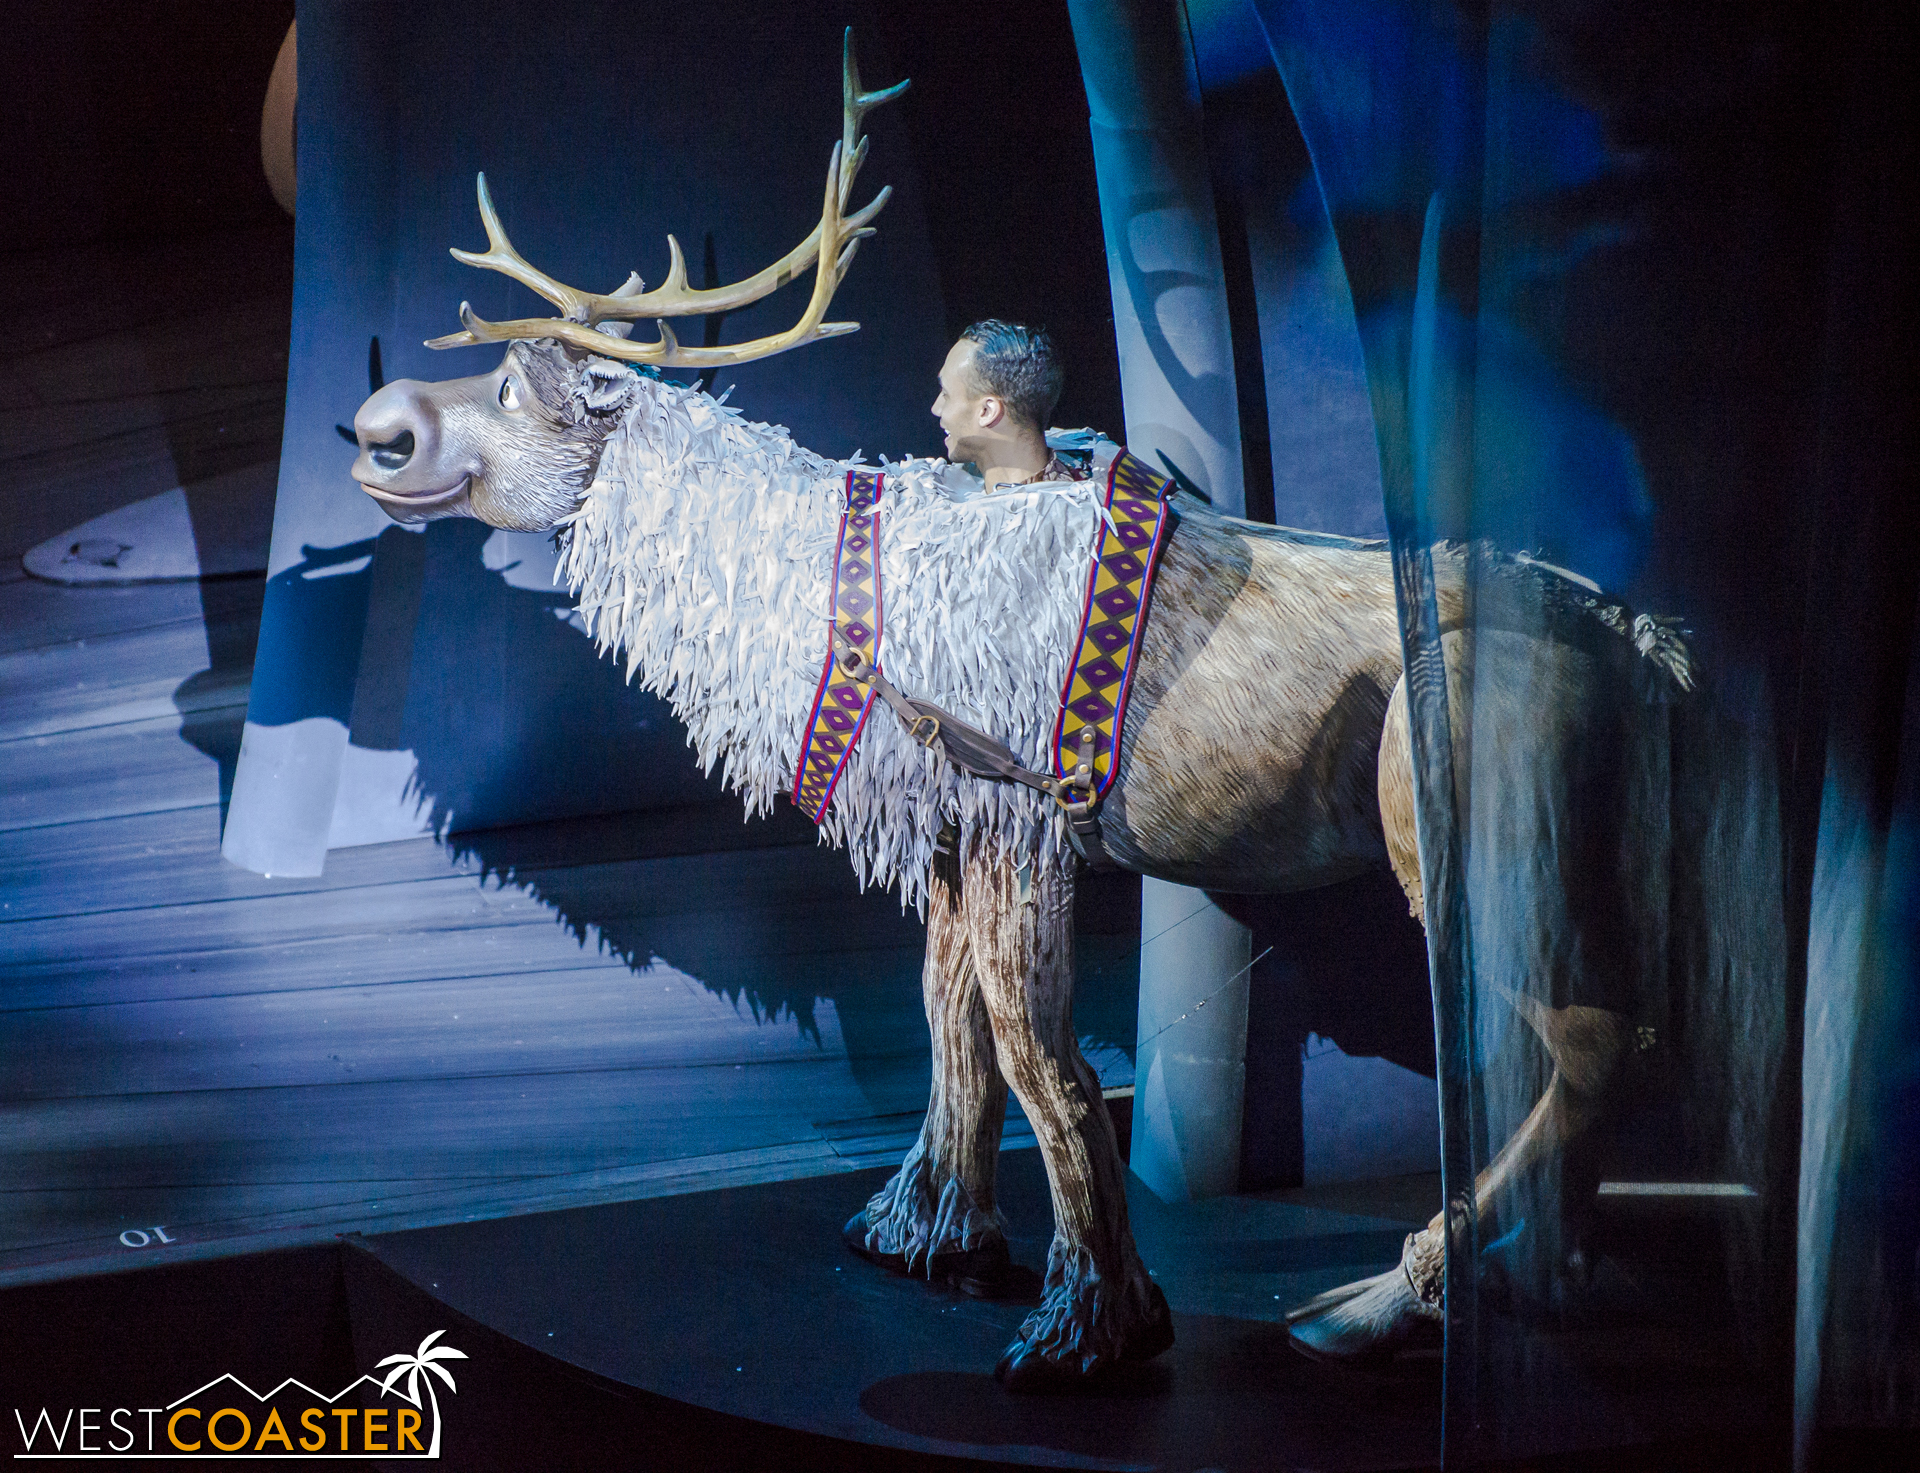 Meanwhile, in the wilderness far removed from Arendale, Sven the Reindeer is enjoying the snowy weather.  [EDITOR'S NOTE: OH MY F***ING GOD WHAT IS THIS ABOMINATION?!?!? - JD]